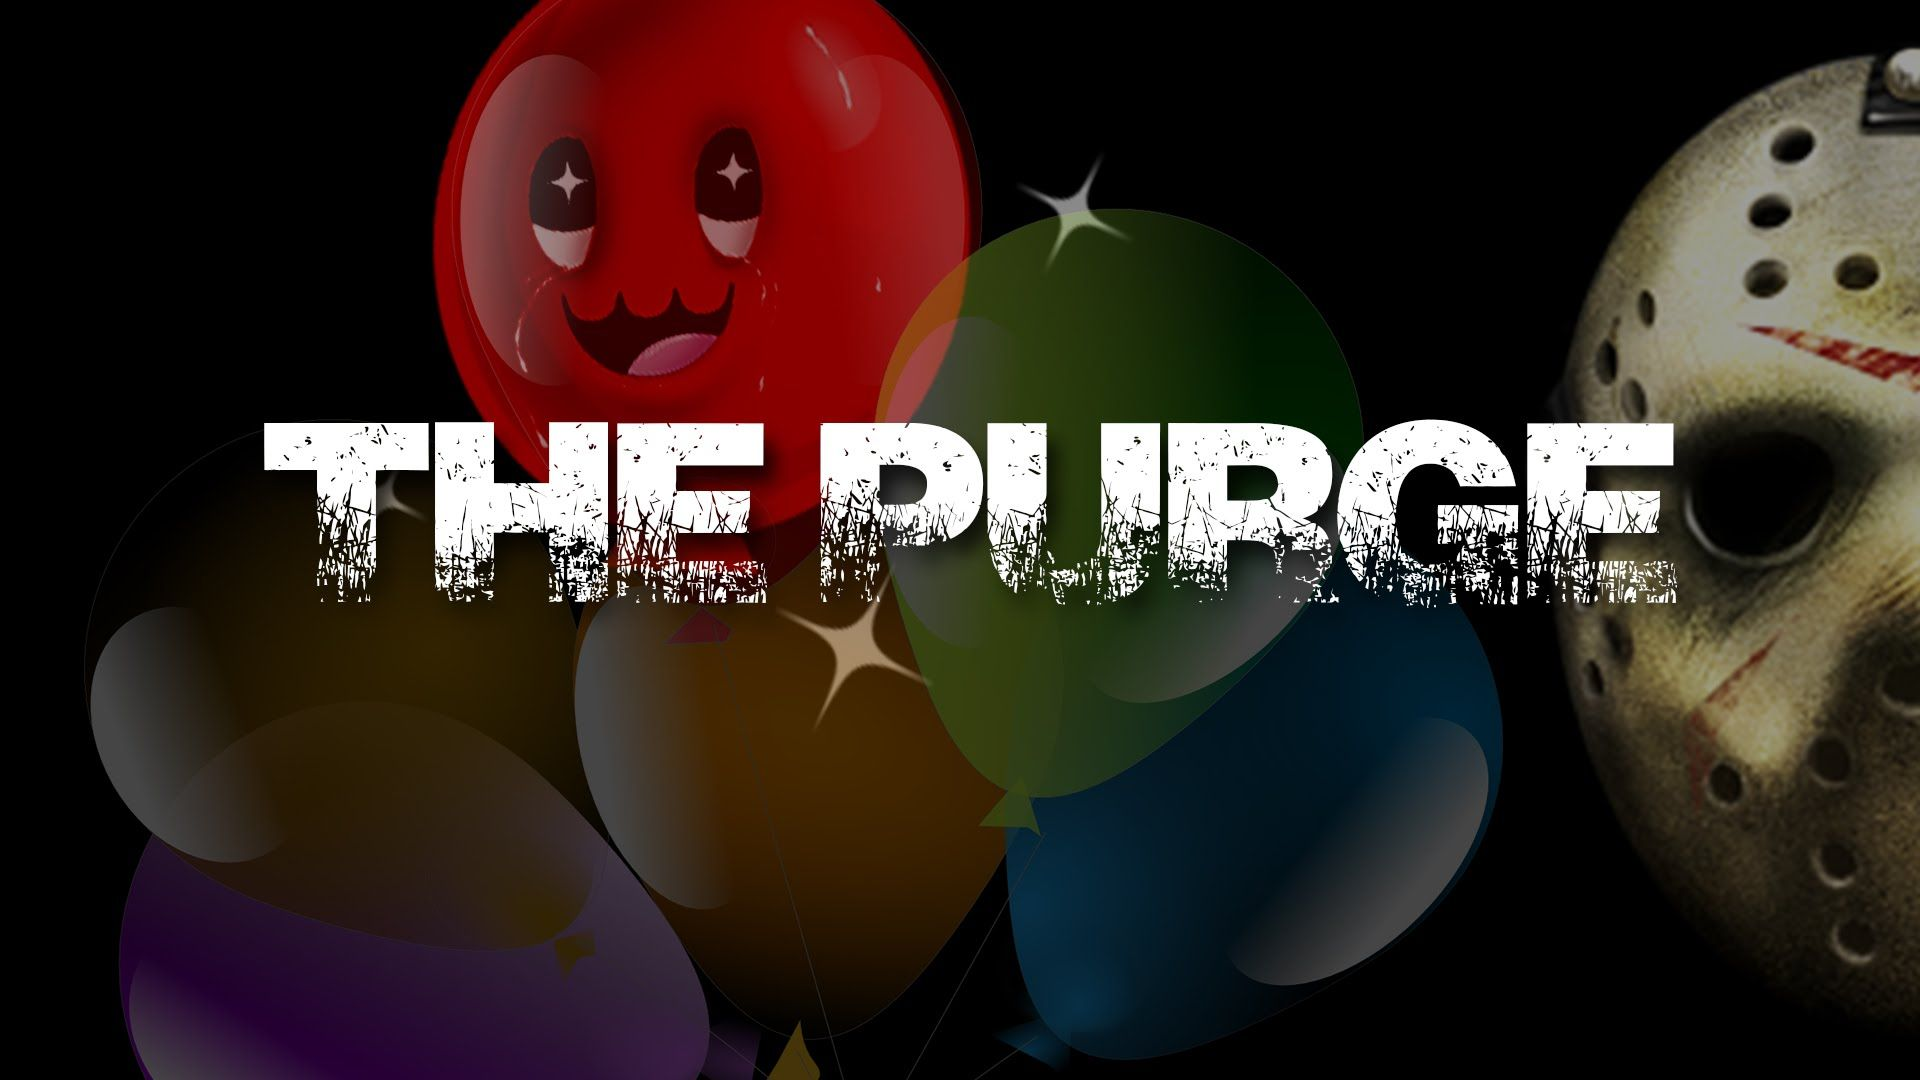 Youth Group Game The Purge The Purge Epic Game Of